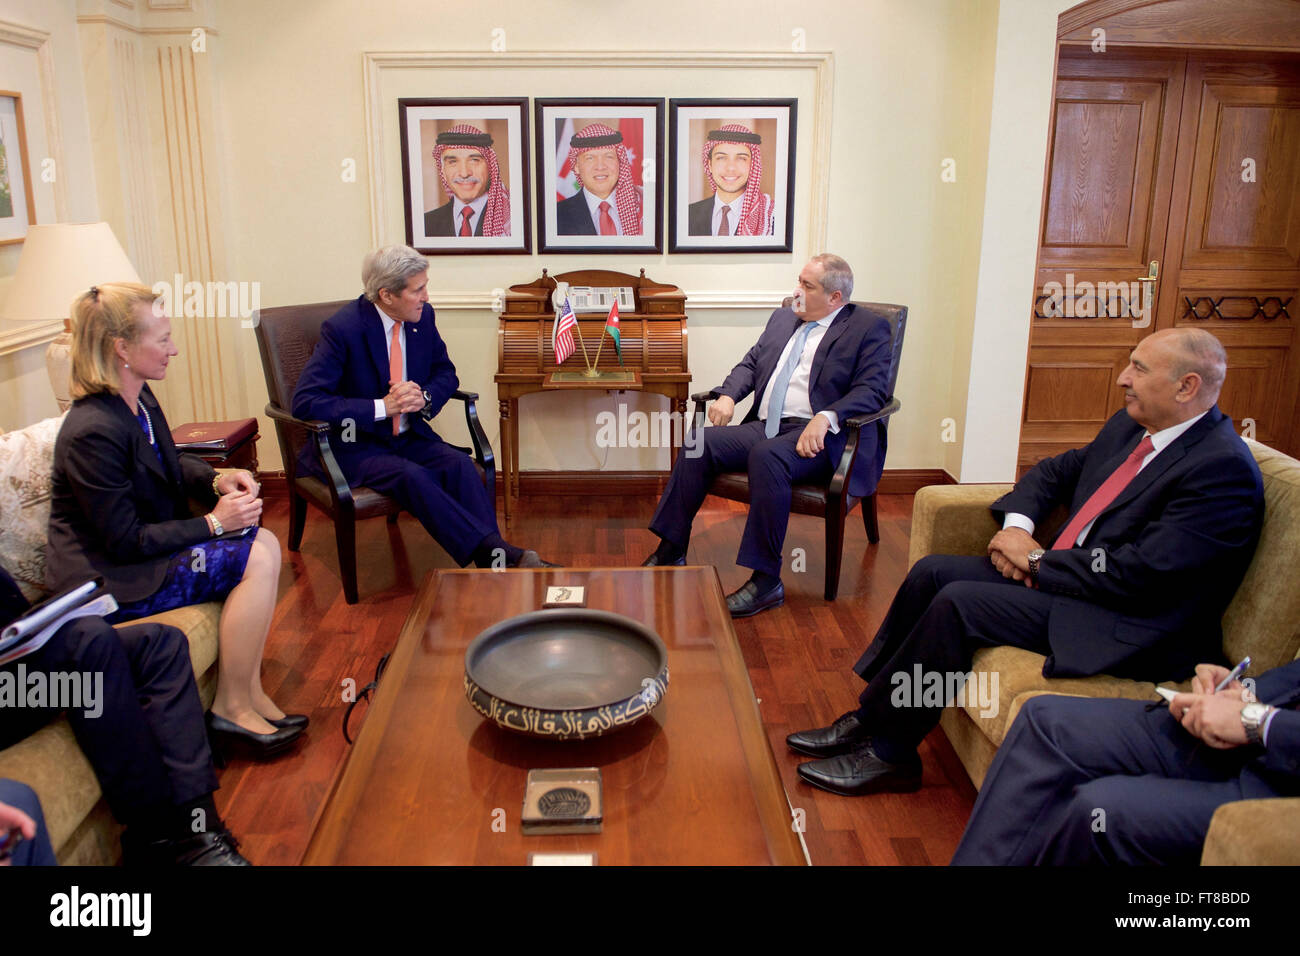 U.S. Secretary of State John Kerry, flanked by U.S. Ambassador to Jordan Alice Wells, sits with Jordanian Foreign - Stock Image